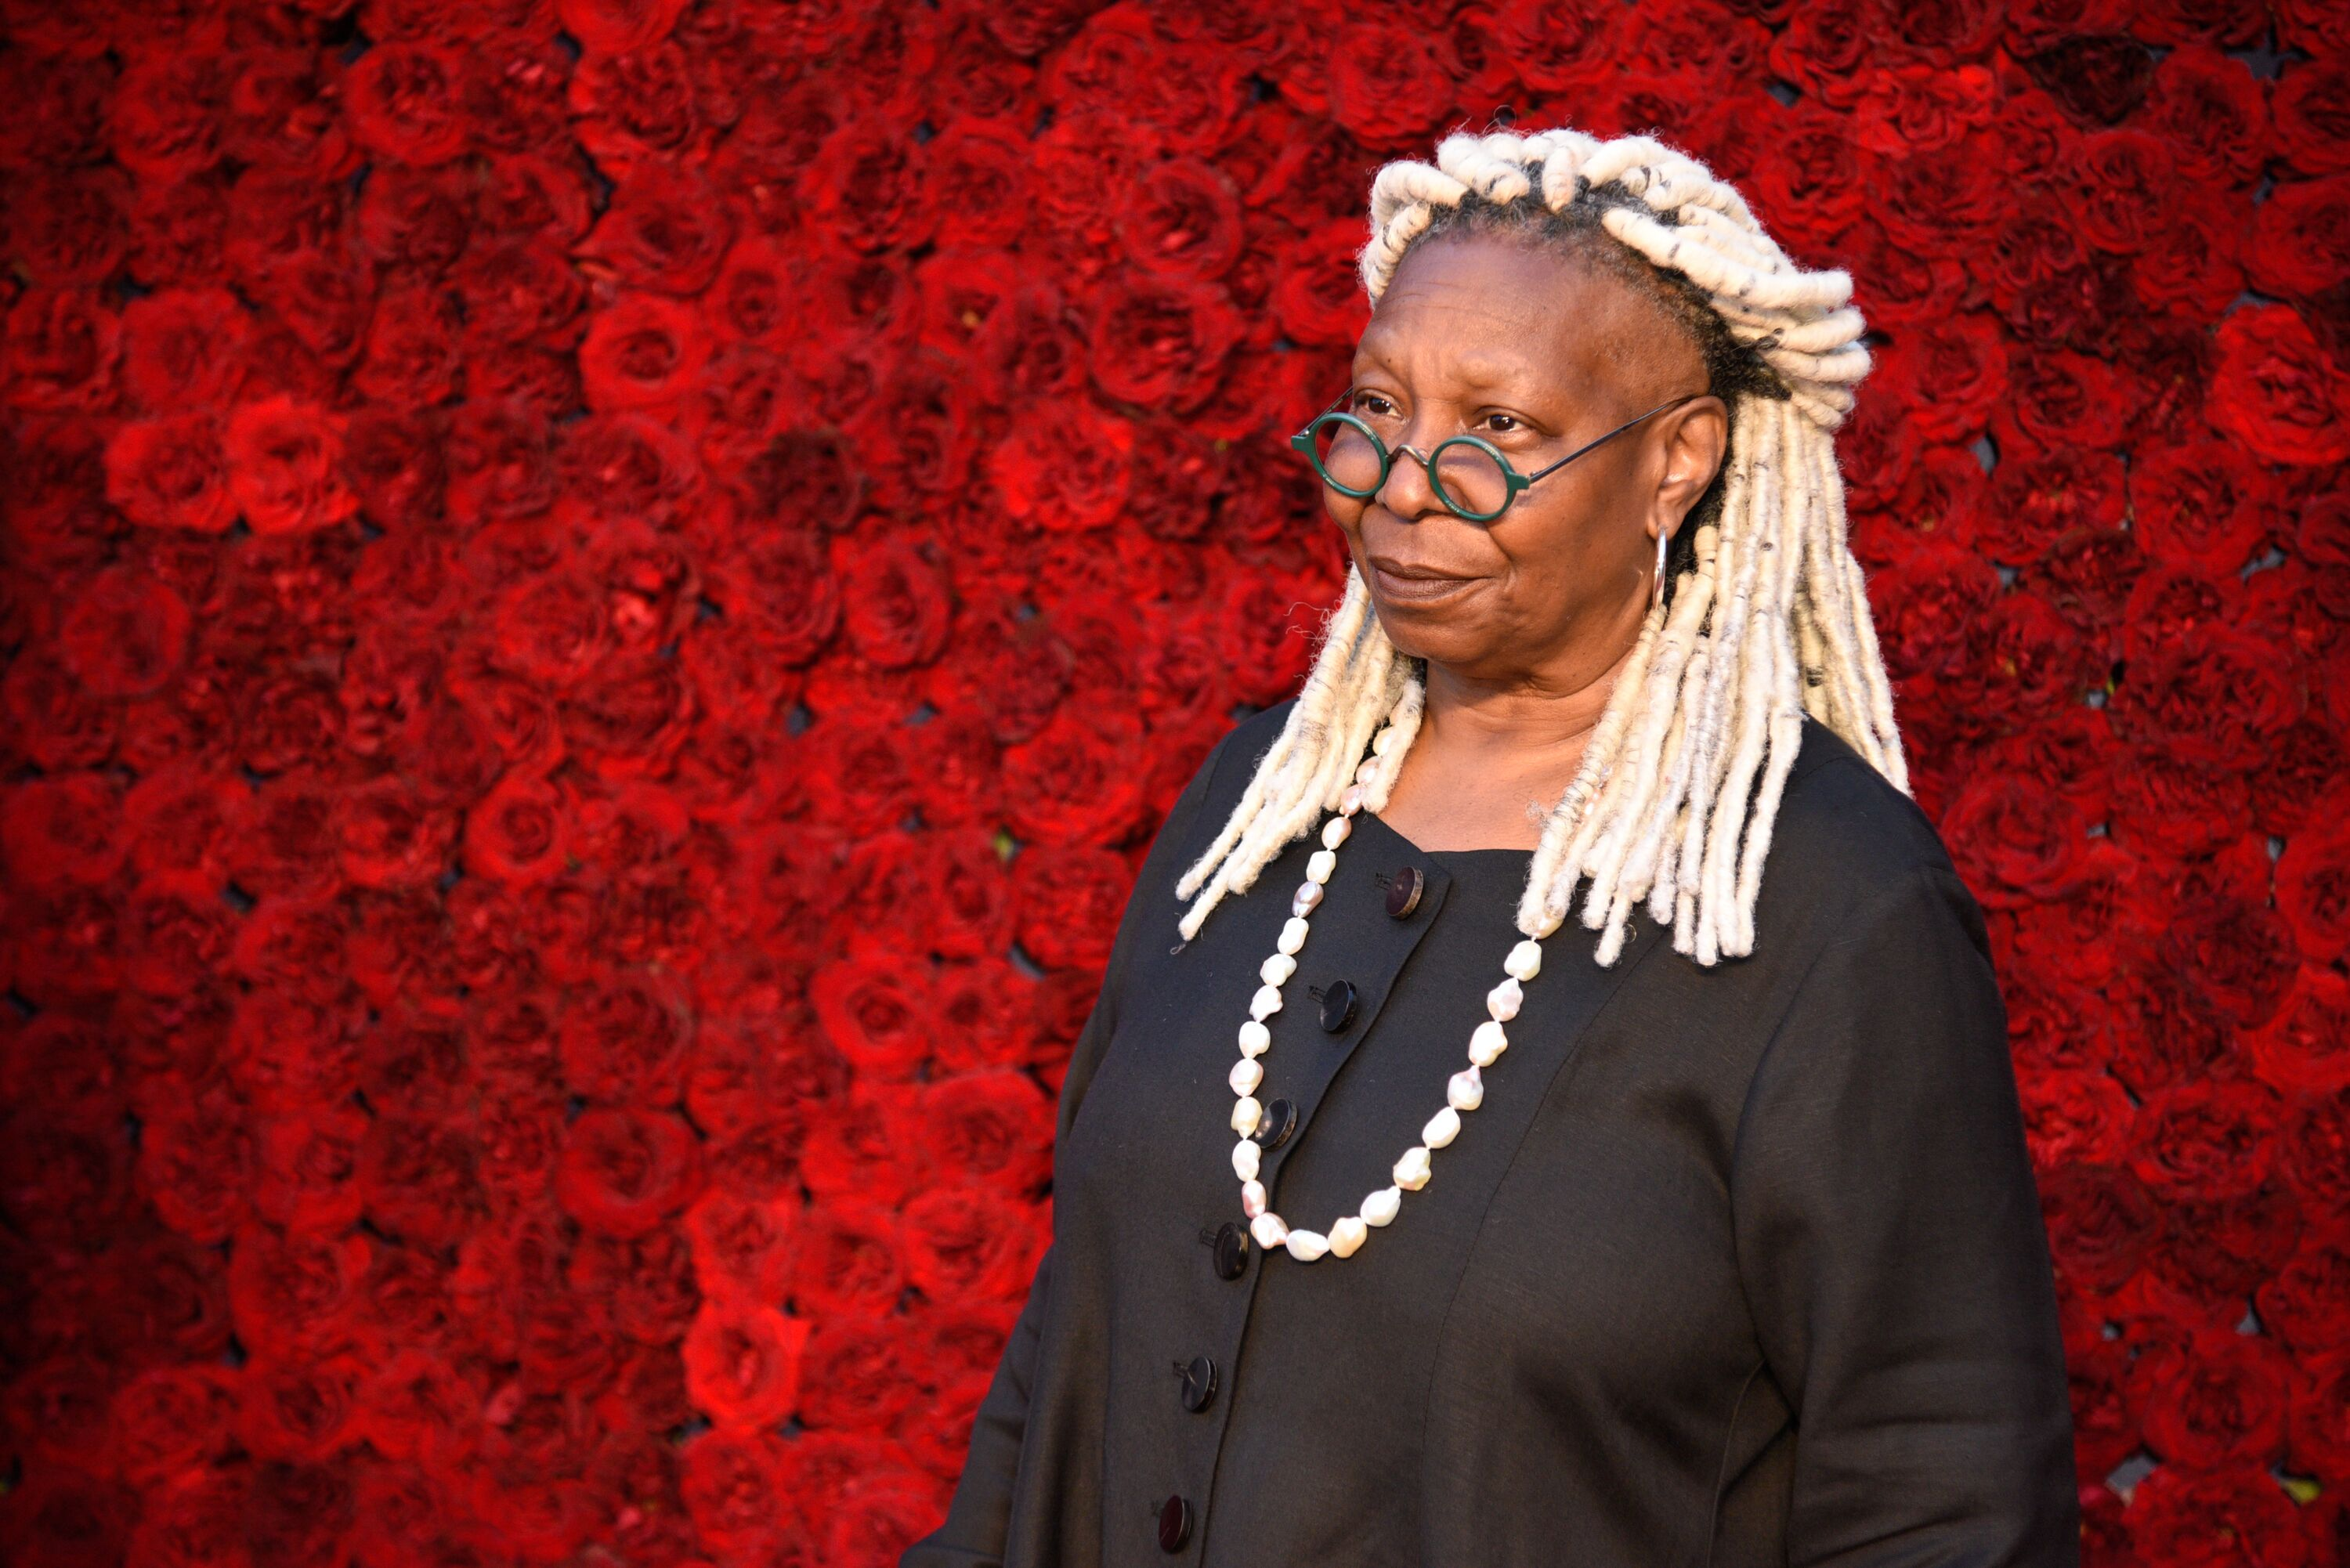 Whoopi Goldberg at the Gala opening of Tyler Perry Studios in Atlanta in 2019 | Source: Getty Images